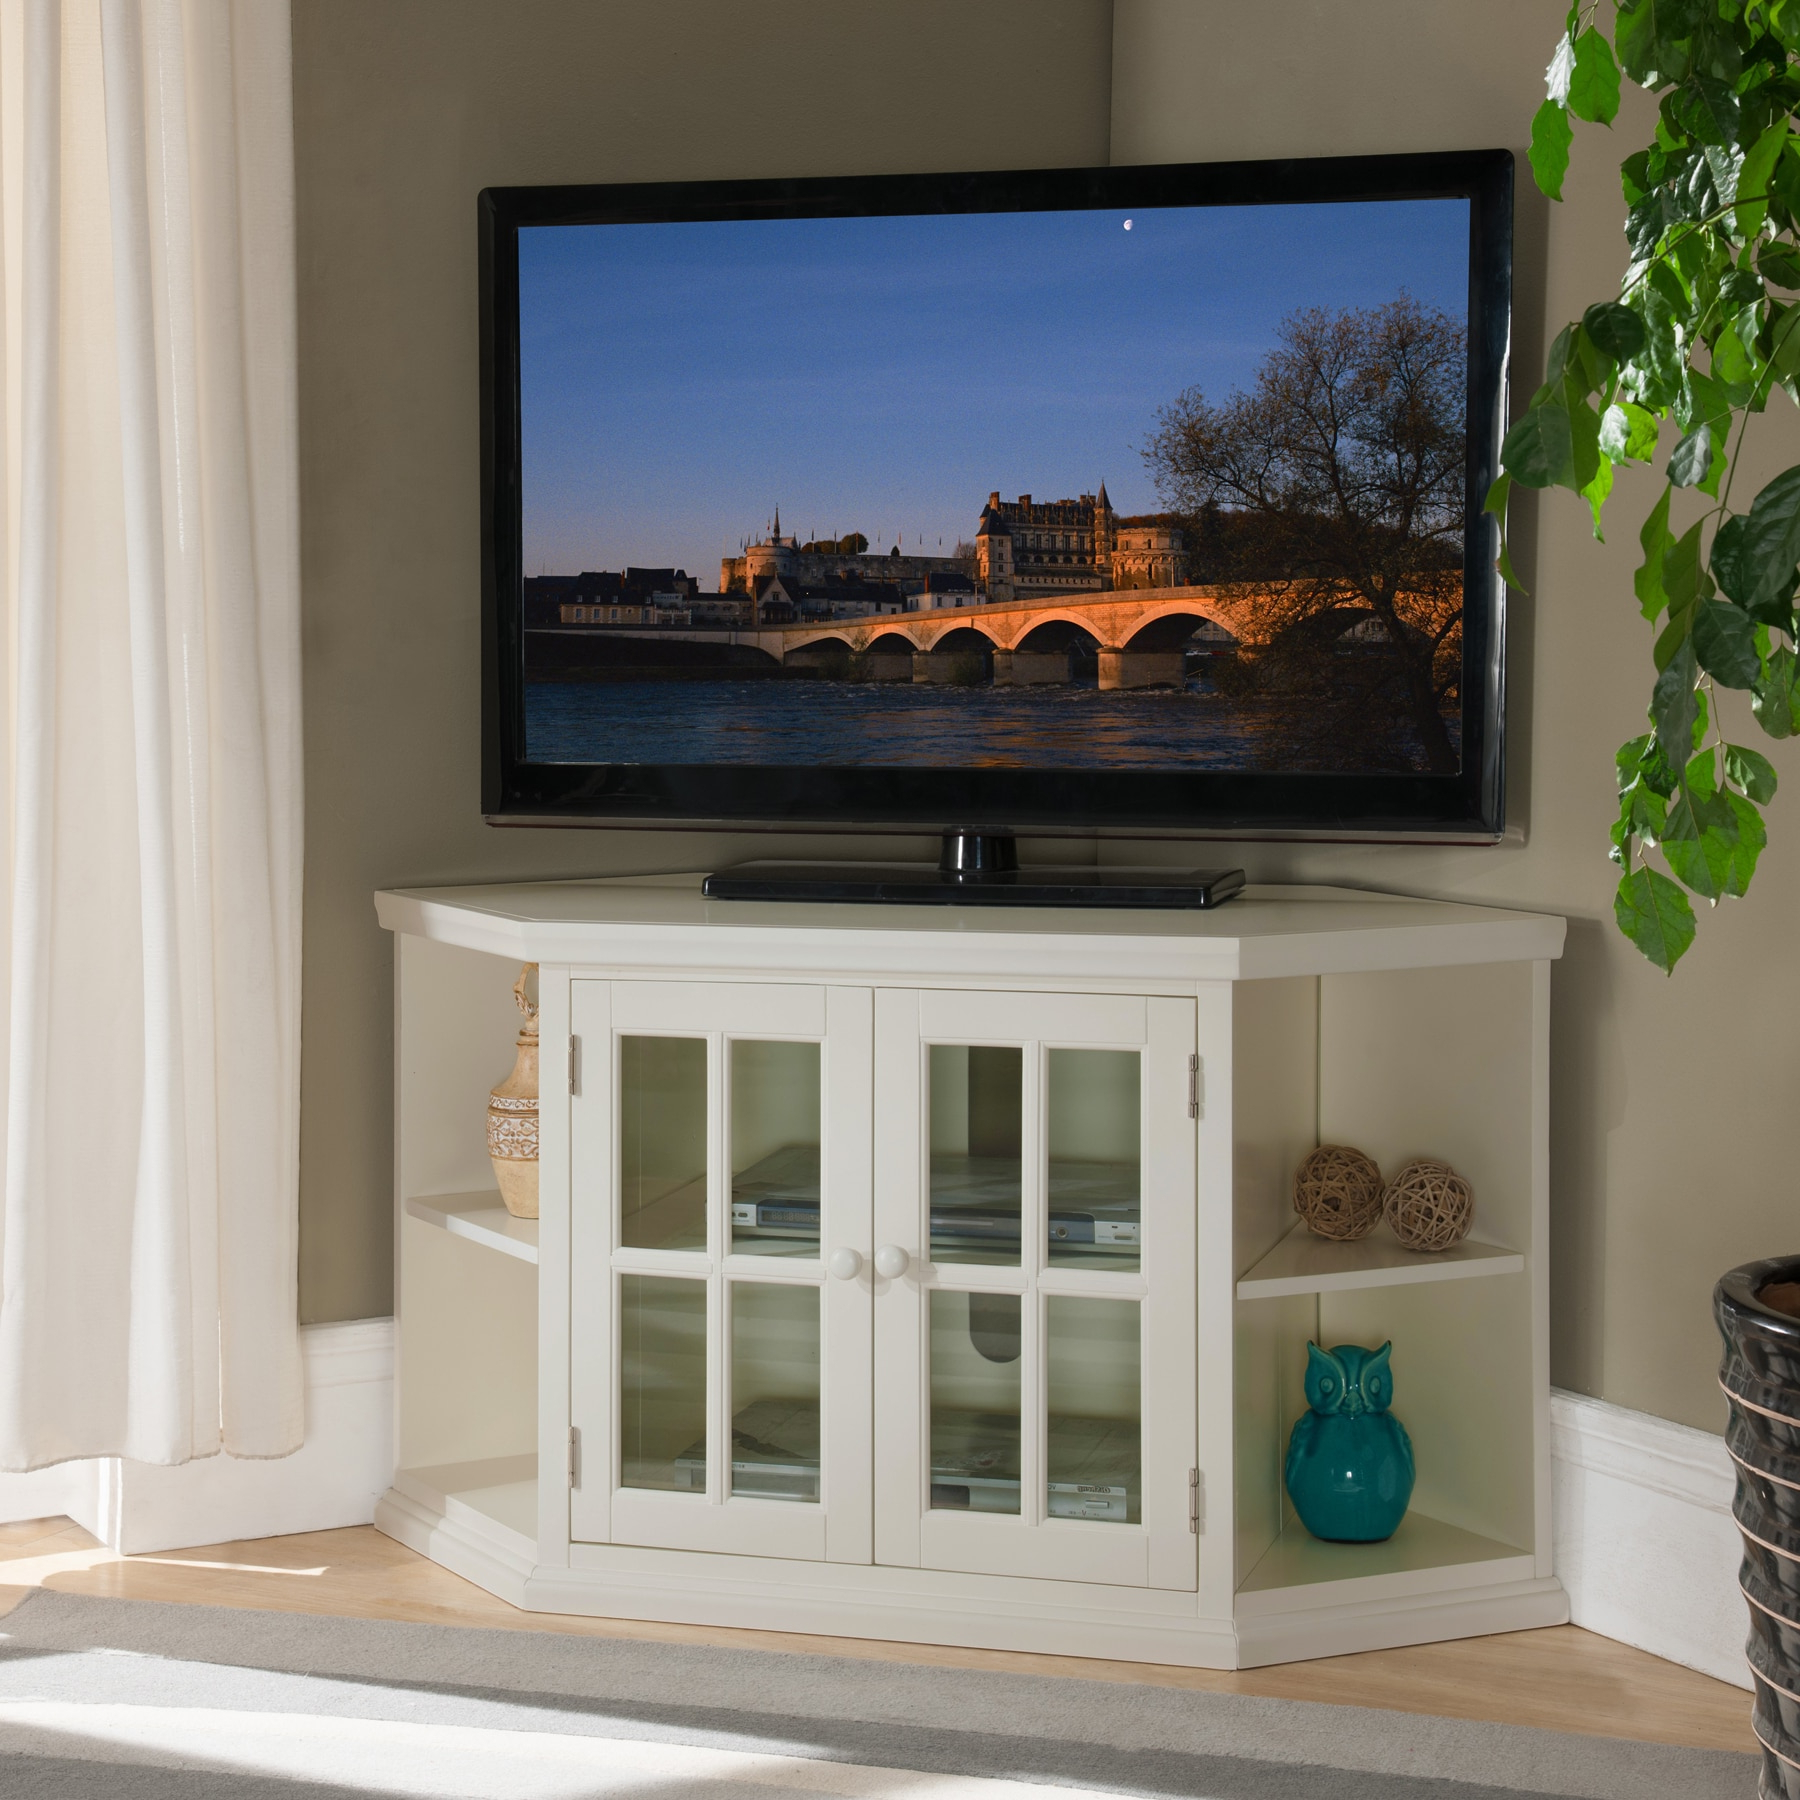 Shop White 46 Inch Corner Tv Stand With Bookcases – Free Intended For Priya Corner Tv Stands (View 12 of 20)